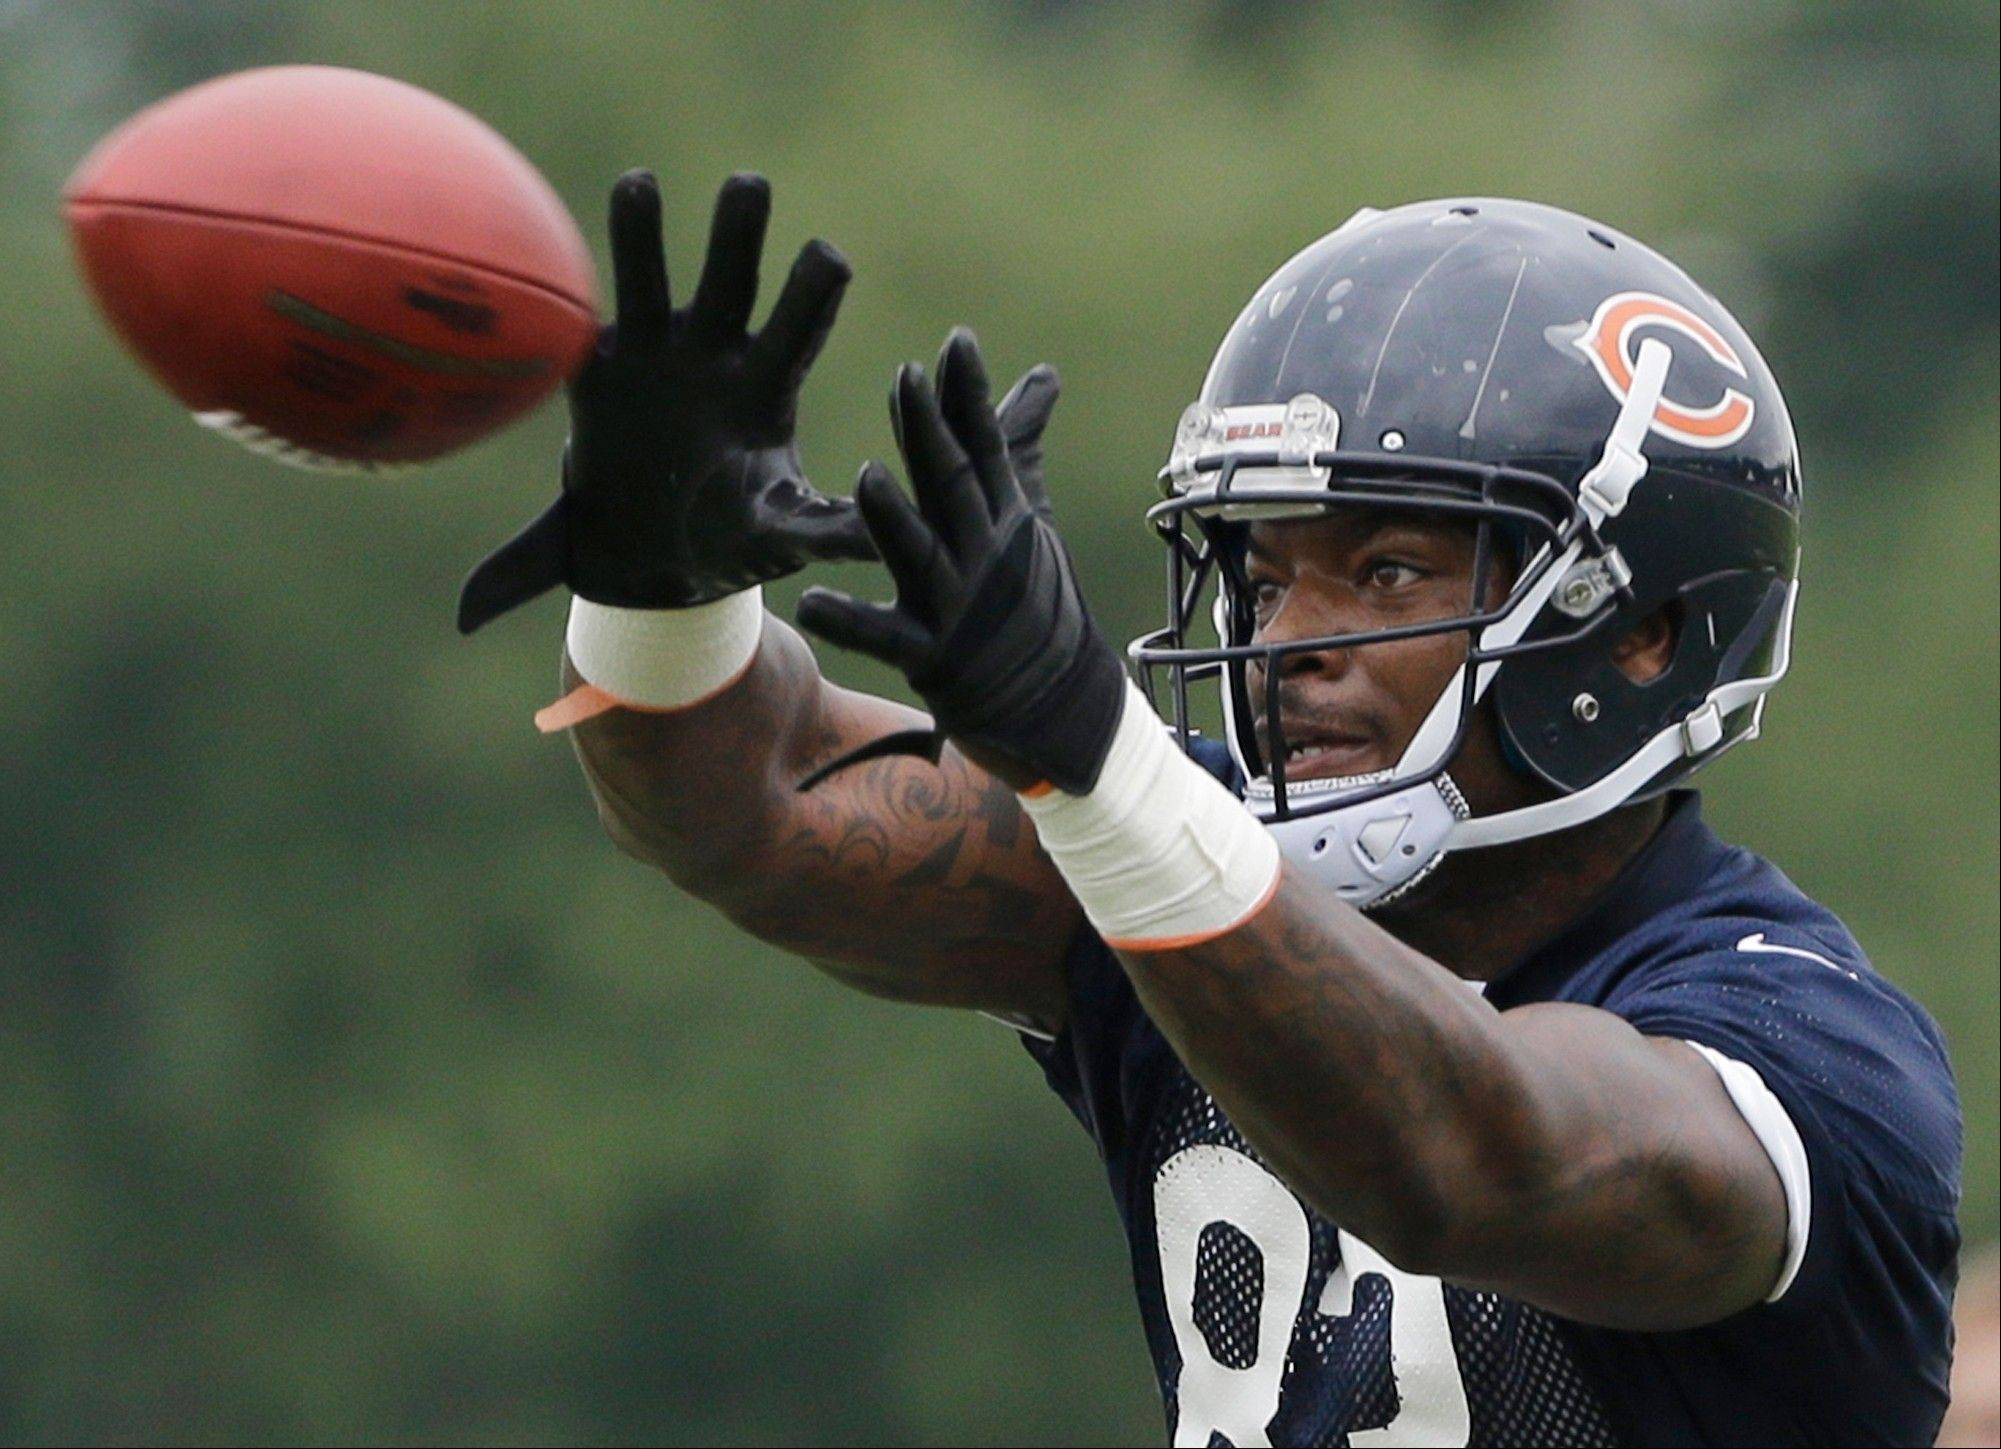 Martellus Bennett (83) catches a ball during NFL football training camp Saturday, July 27, 2013, at Olivet Nazarene University in Bourbonnais, Ill.